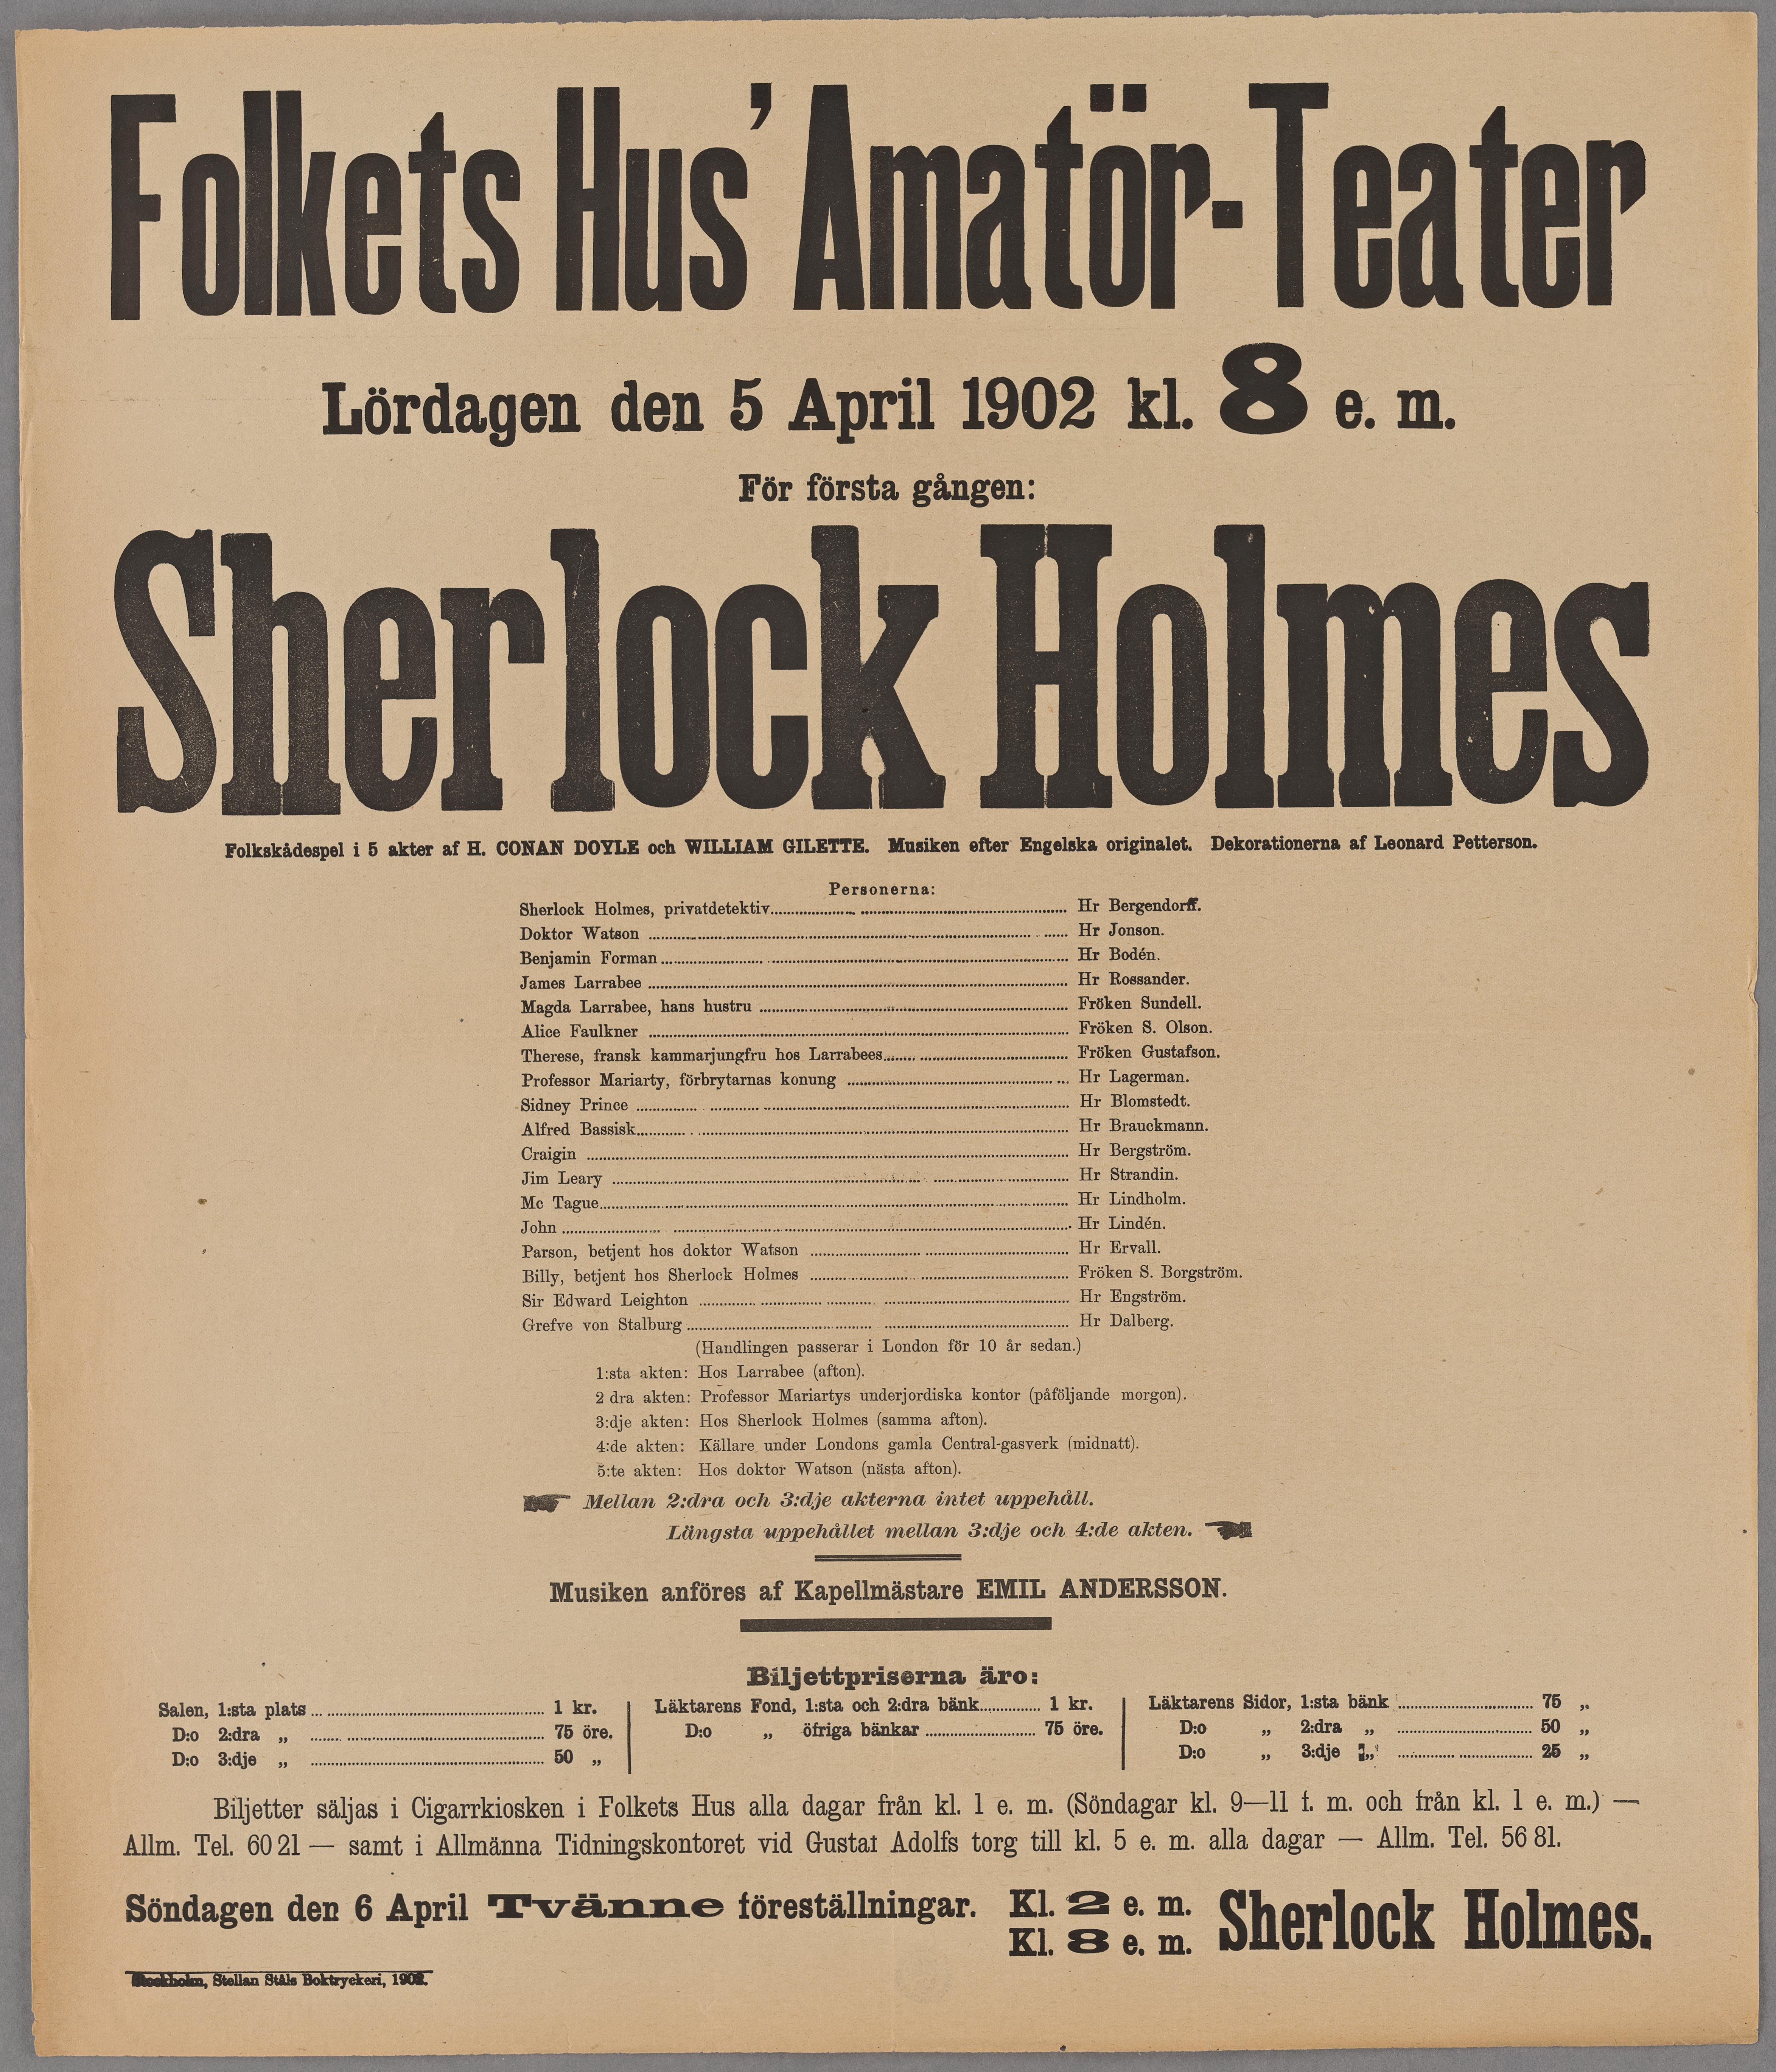 Teaterprogram för Folkets Hus Amatörteater 5 april 1902